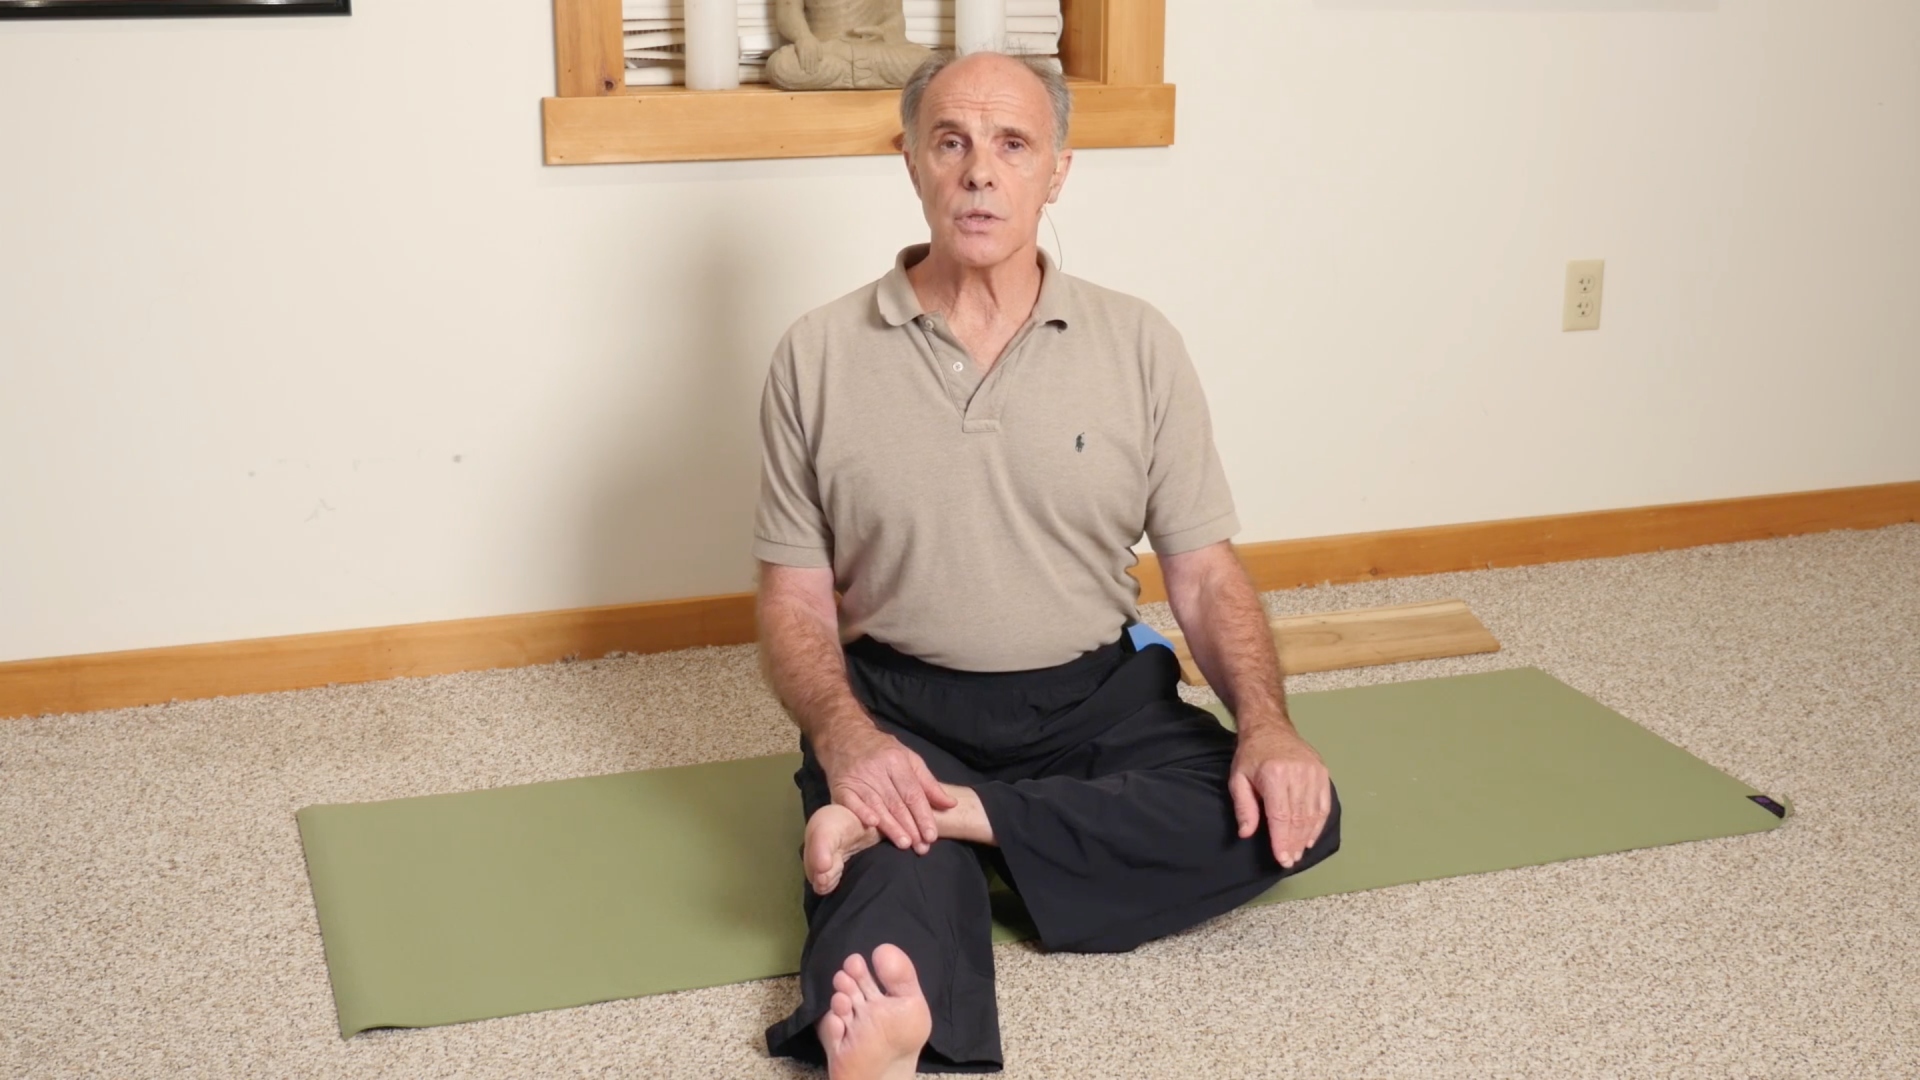 Prepare the hips, knees, and ankles for seated practices. | Yoga ...